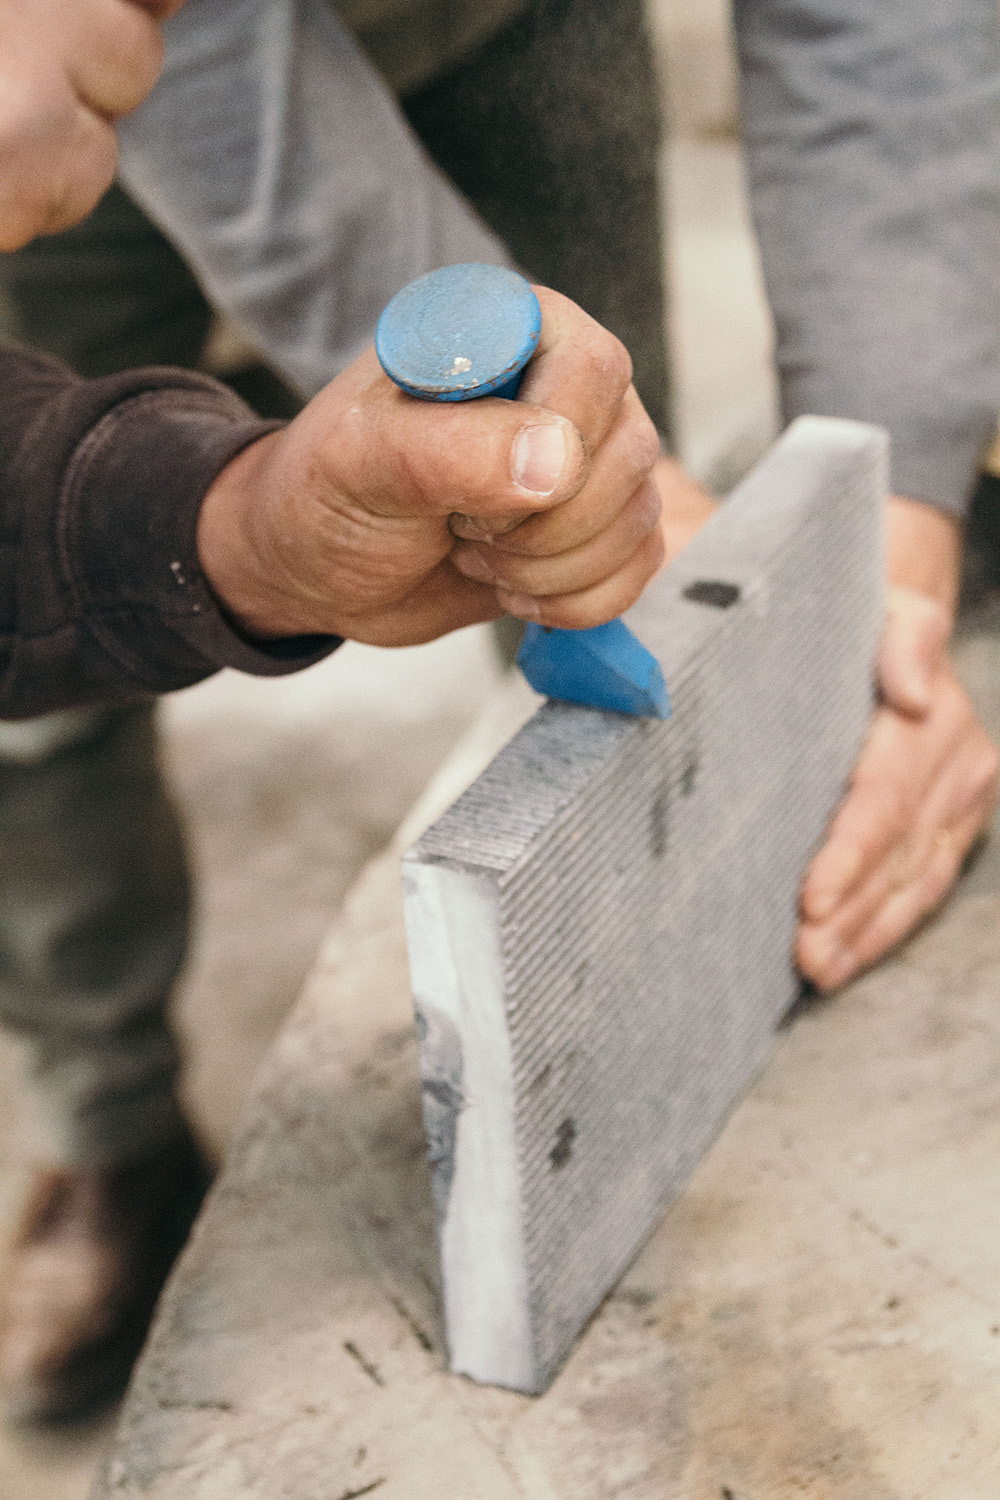 Belgian stone being carved at the marble workshop.